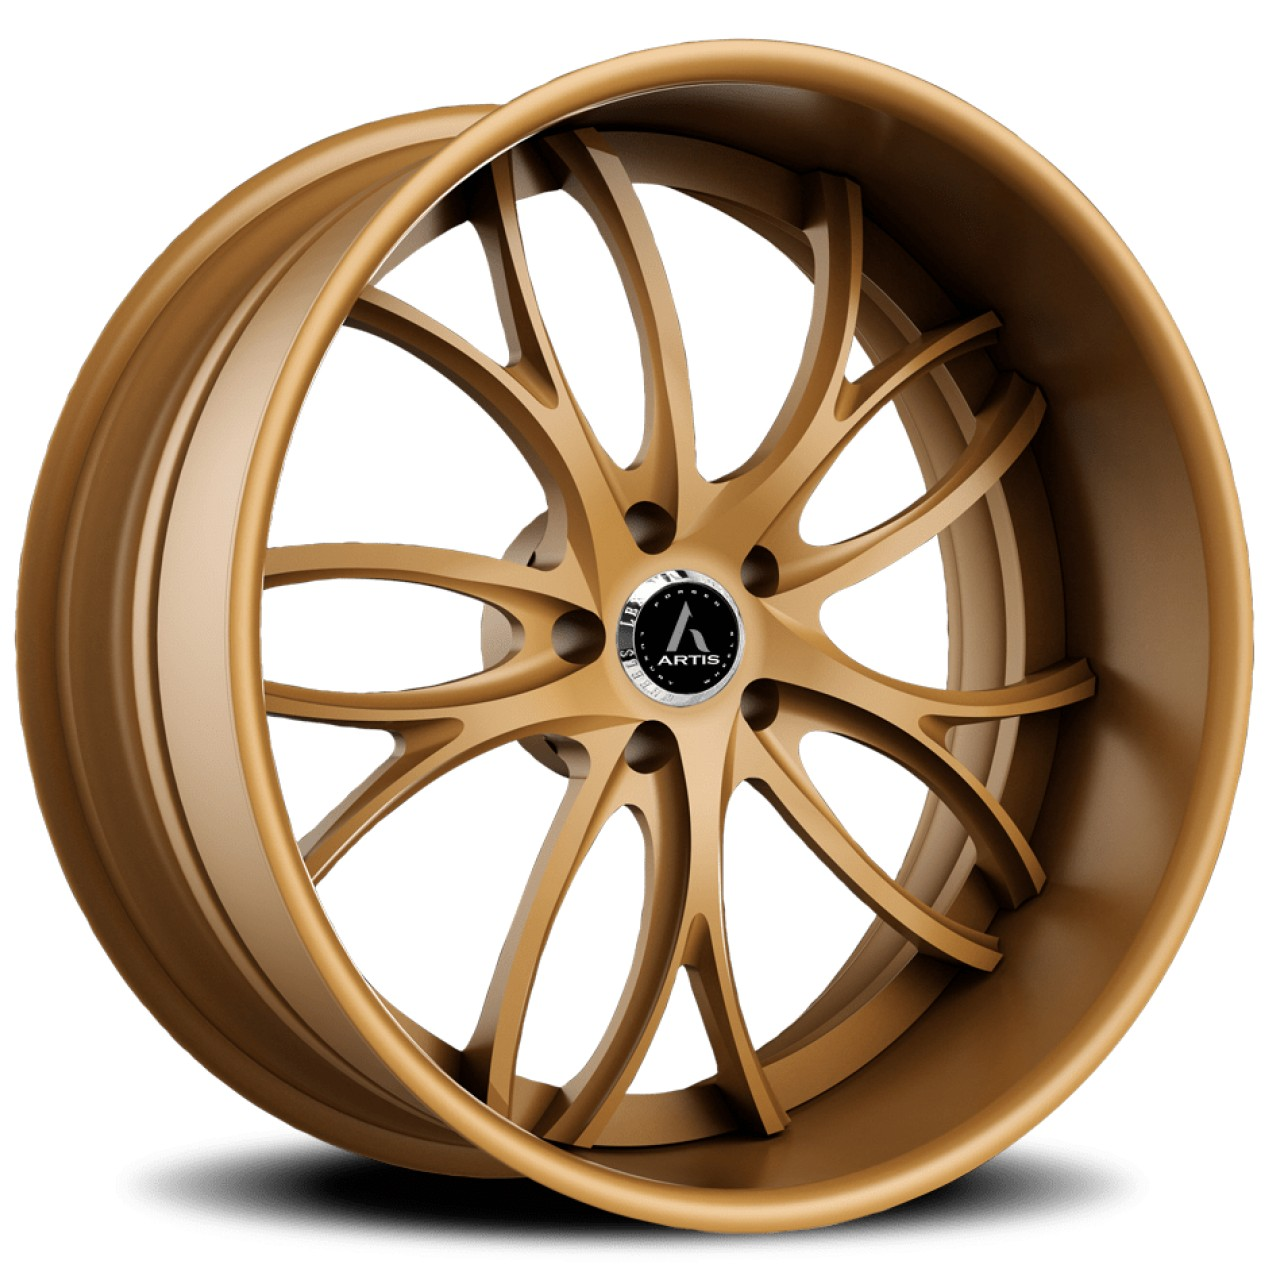 Artis Forged Biscayne wheel with Matte Bronze finish